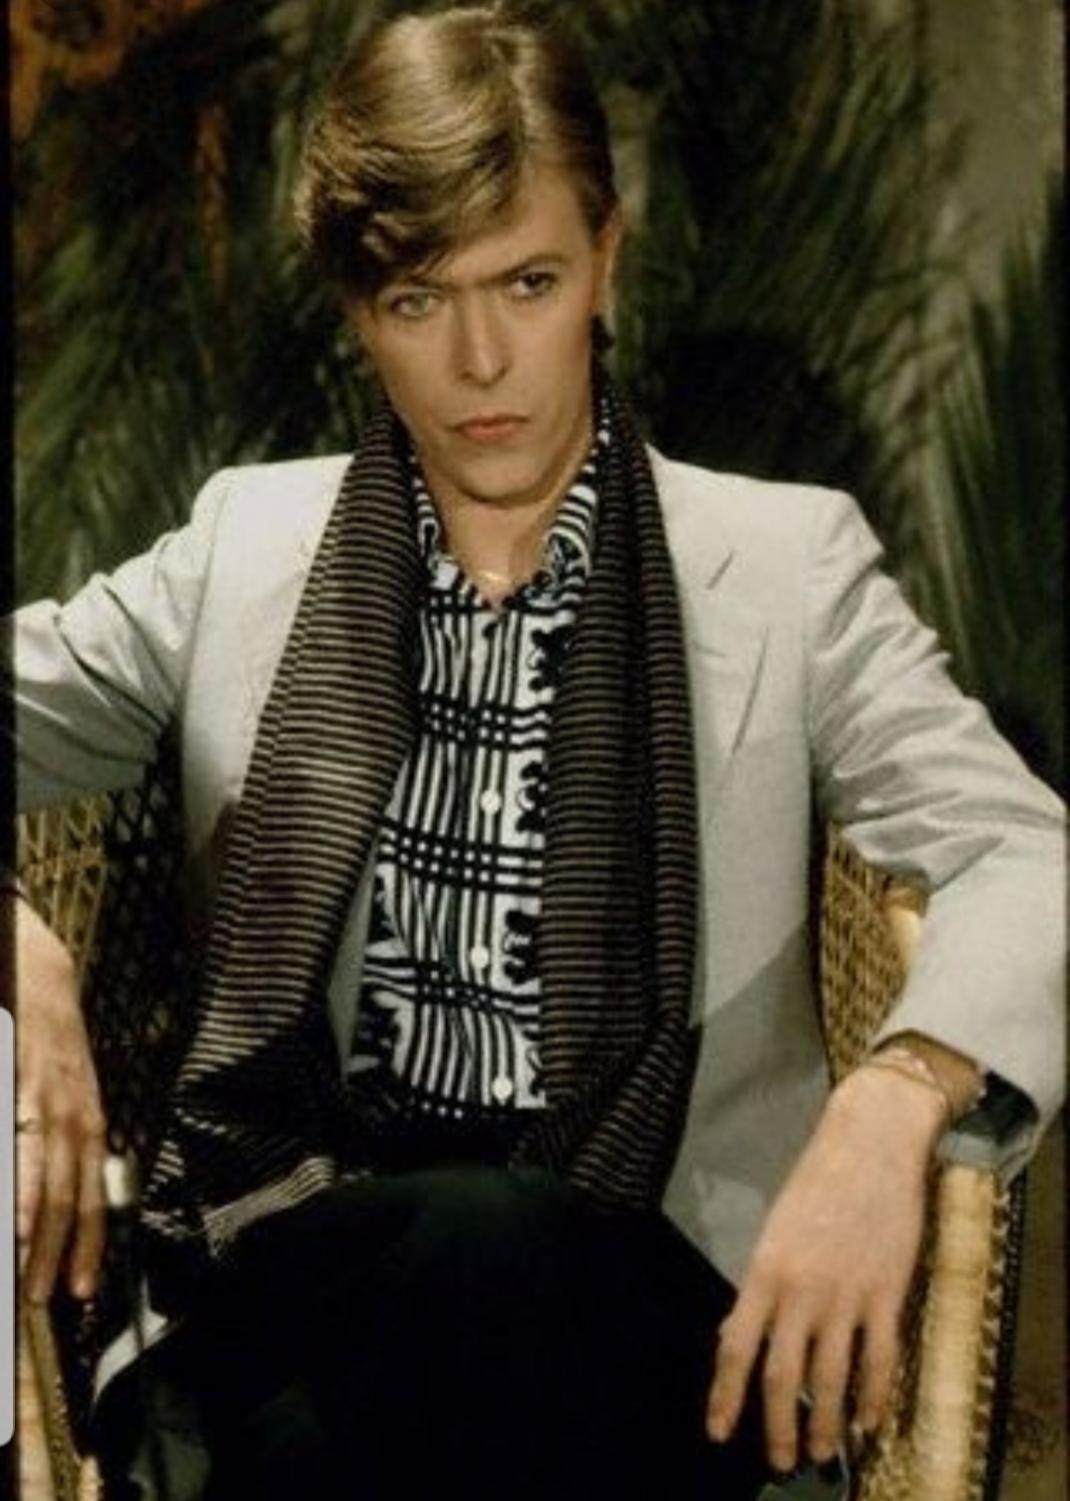 DAVID BOWIE IN FRANCE This fabulous picture of David Bowie was taken in France by Sarah W. on Flickr.